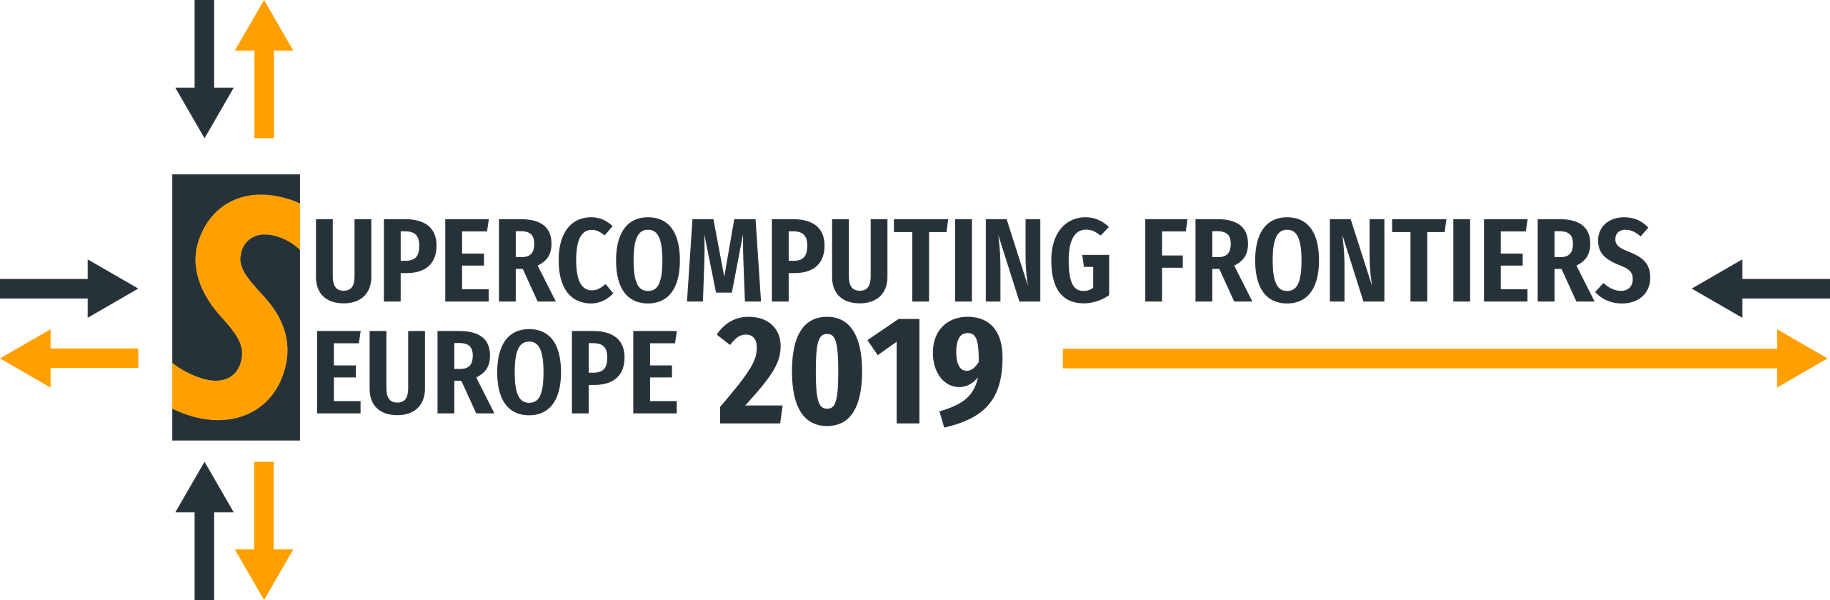 Supercomputing Frontiers Europe 2019